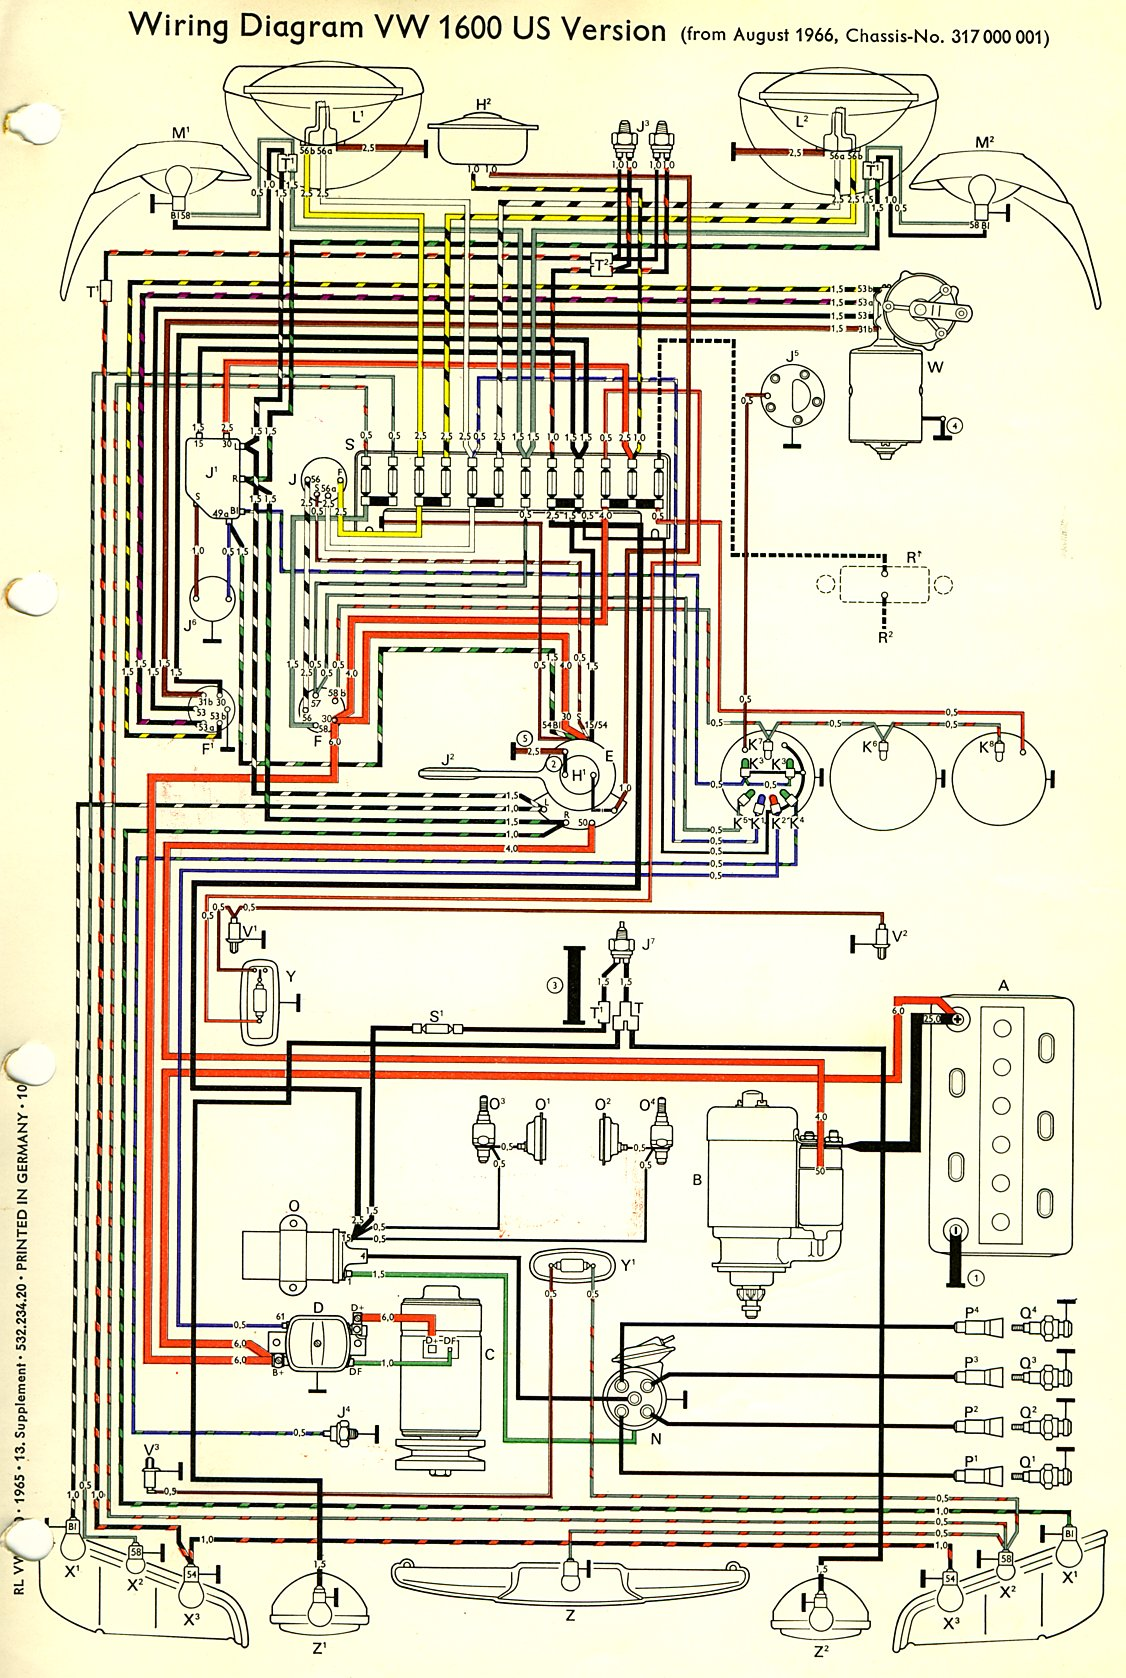 wiring harness vw type 3 wiring harness diagram vw type 3 wiring diagram #15